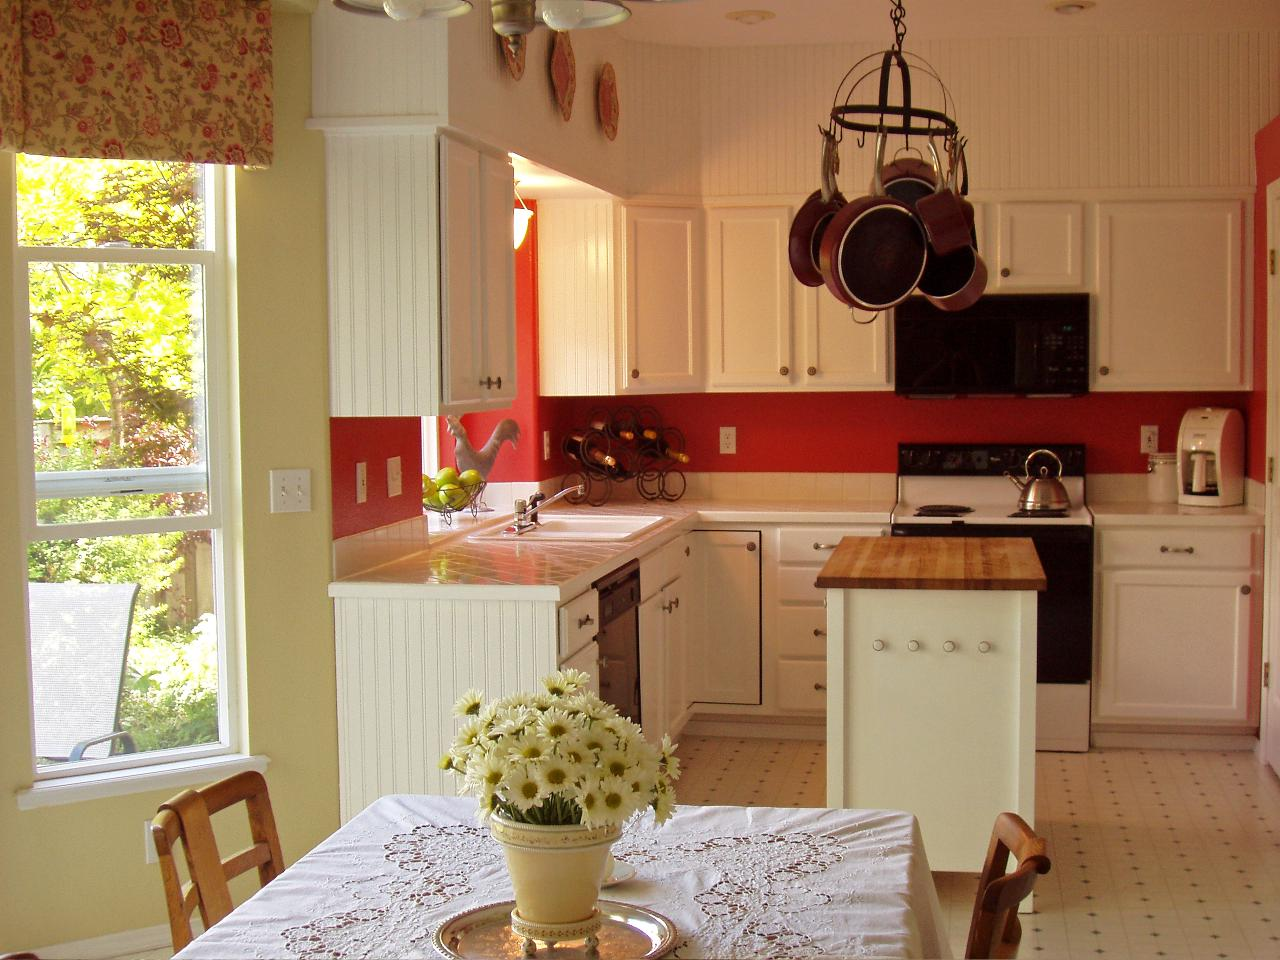 Cute country kitchen cabinets toiles of the trade smxpxbm